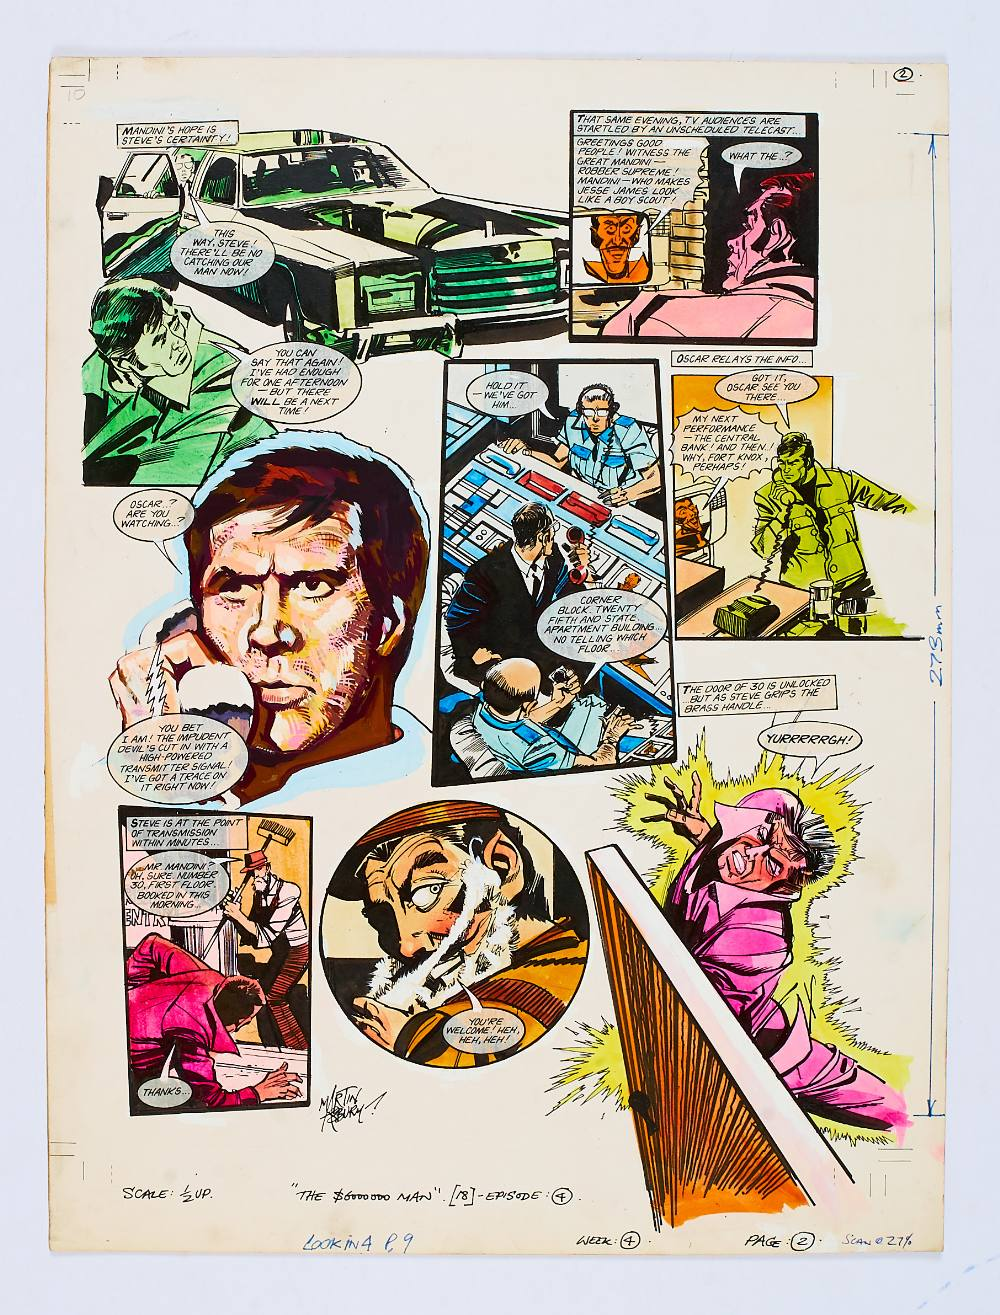 Lot 107 - Six-Million Dollar Man original artwork (1975) painted and signed by Martin Asbury for Look-in 4